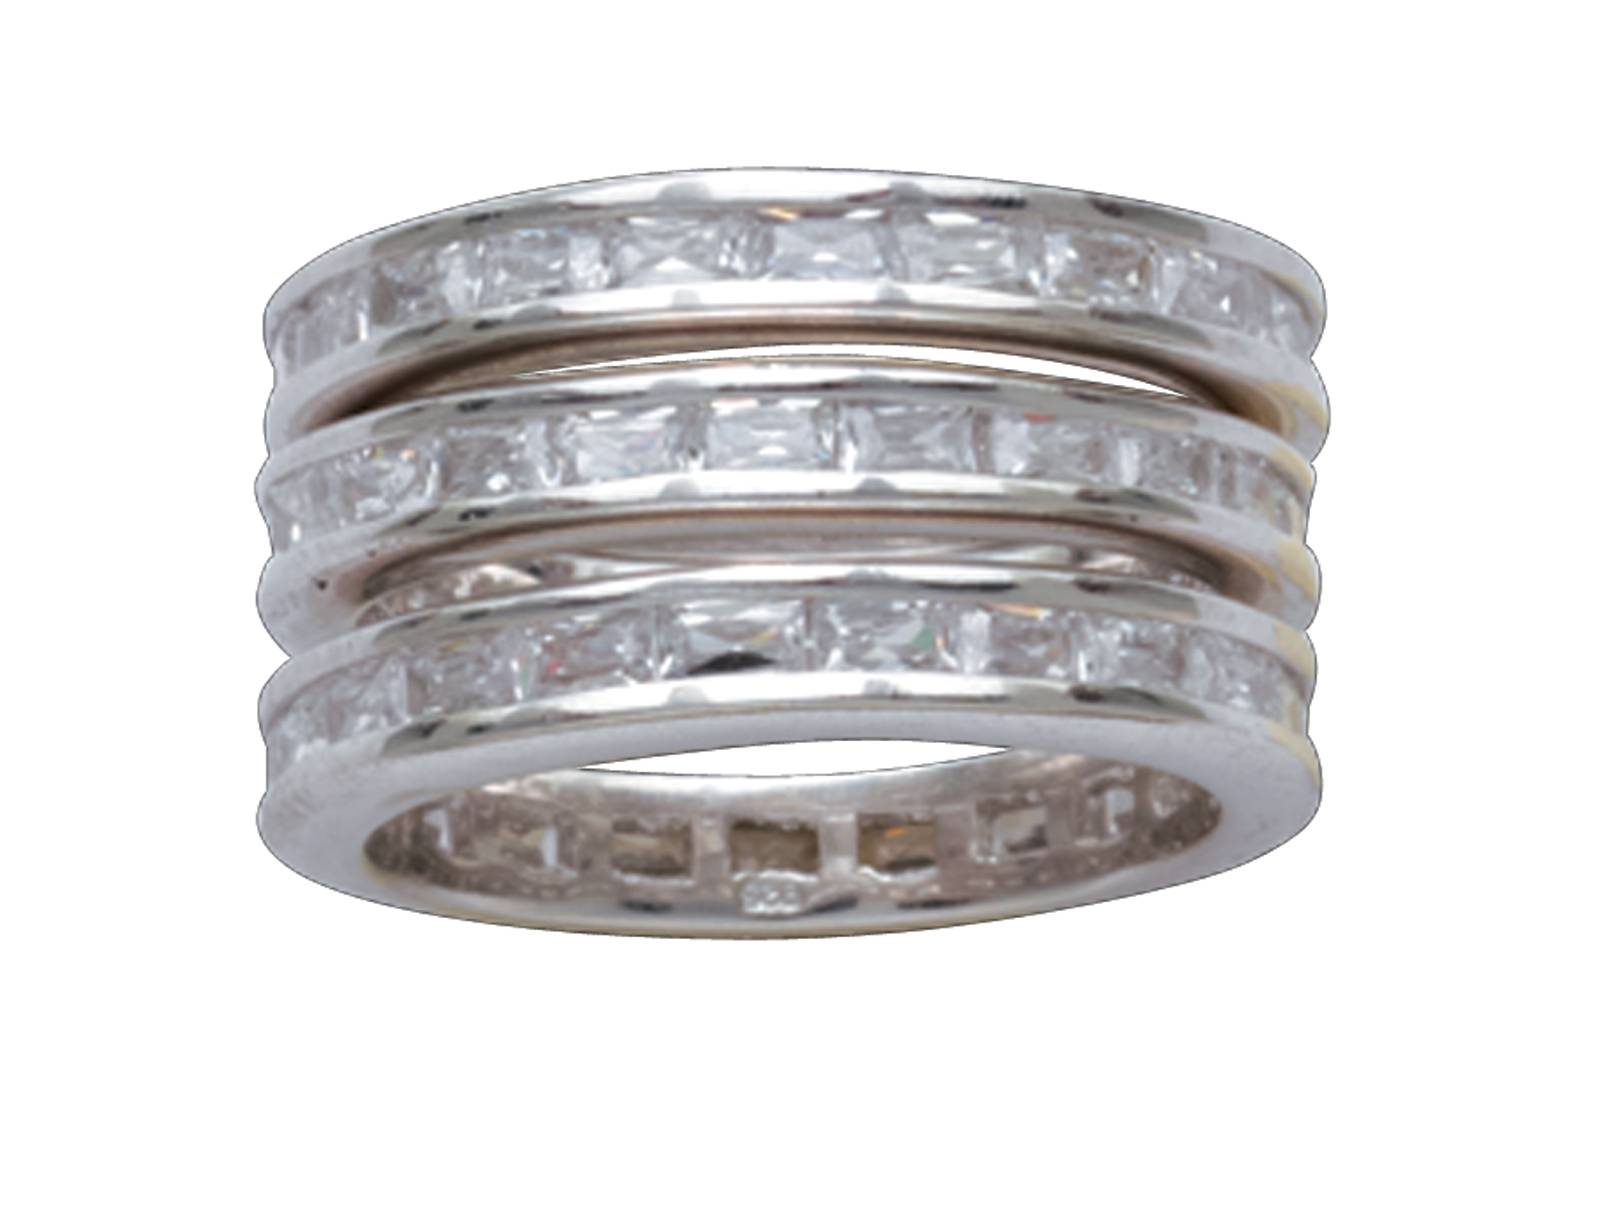 Montana Silversmiths Silver Channels Triple Stack Ring